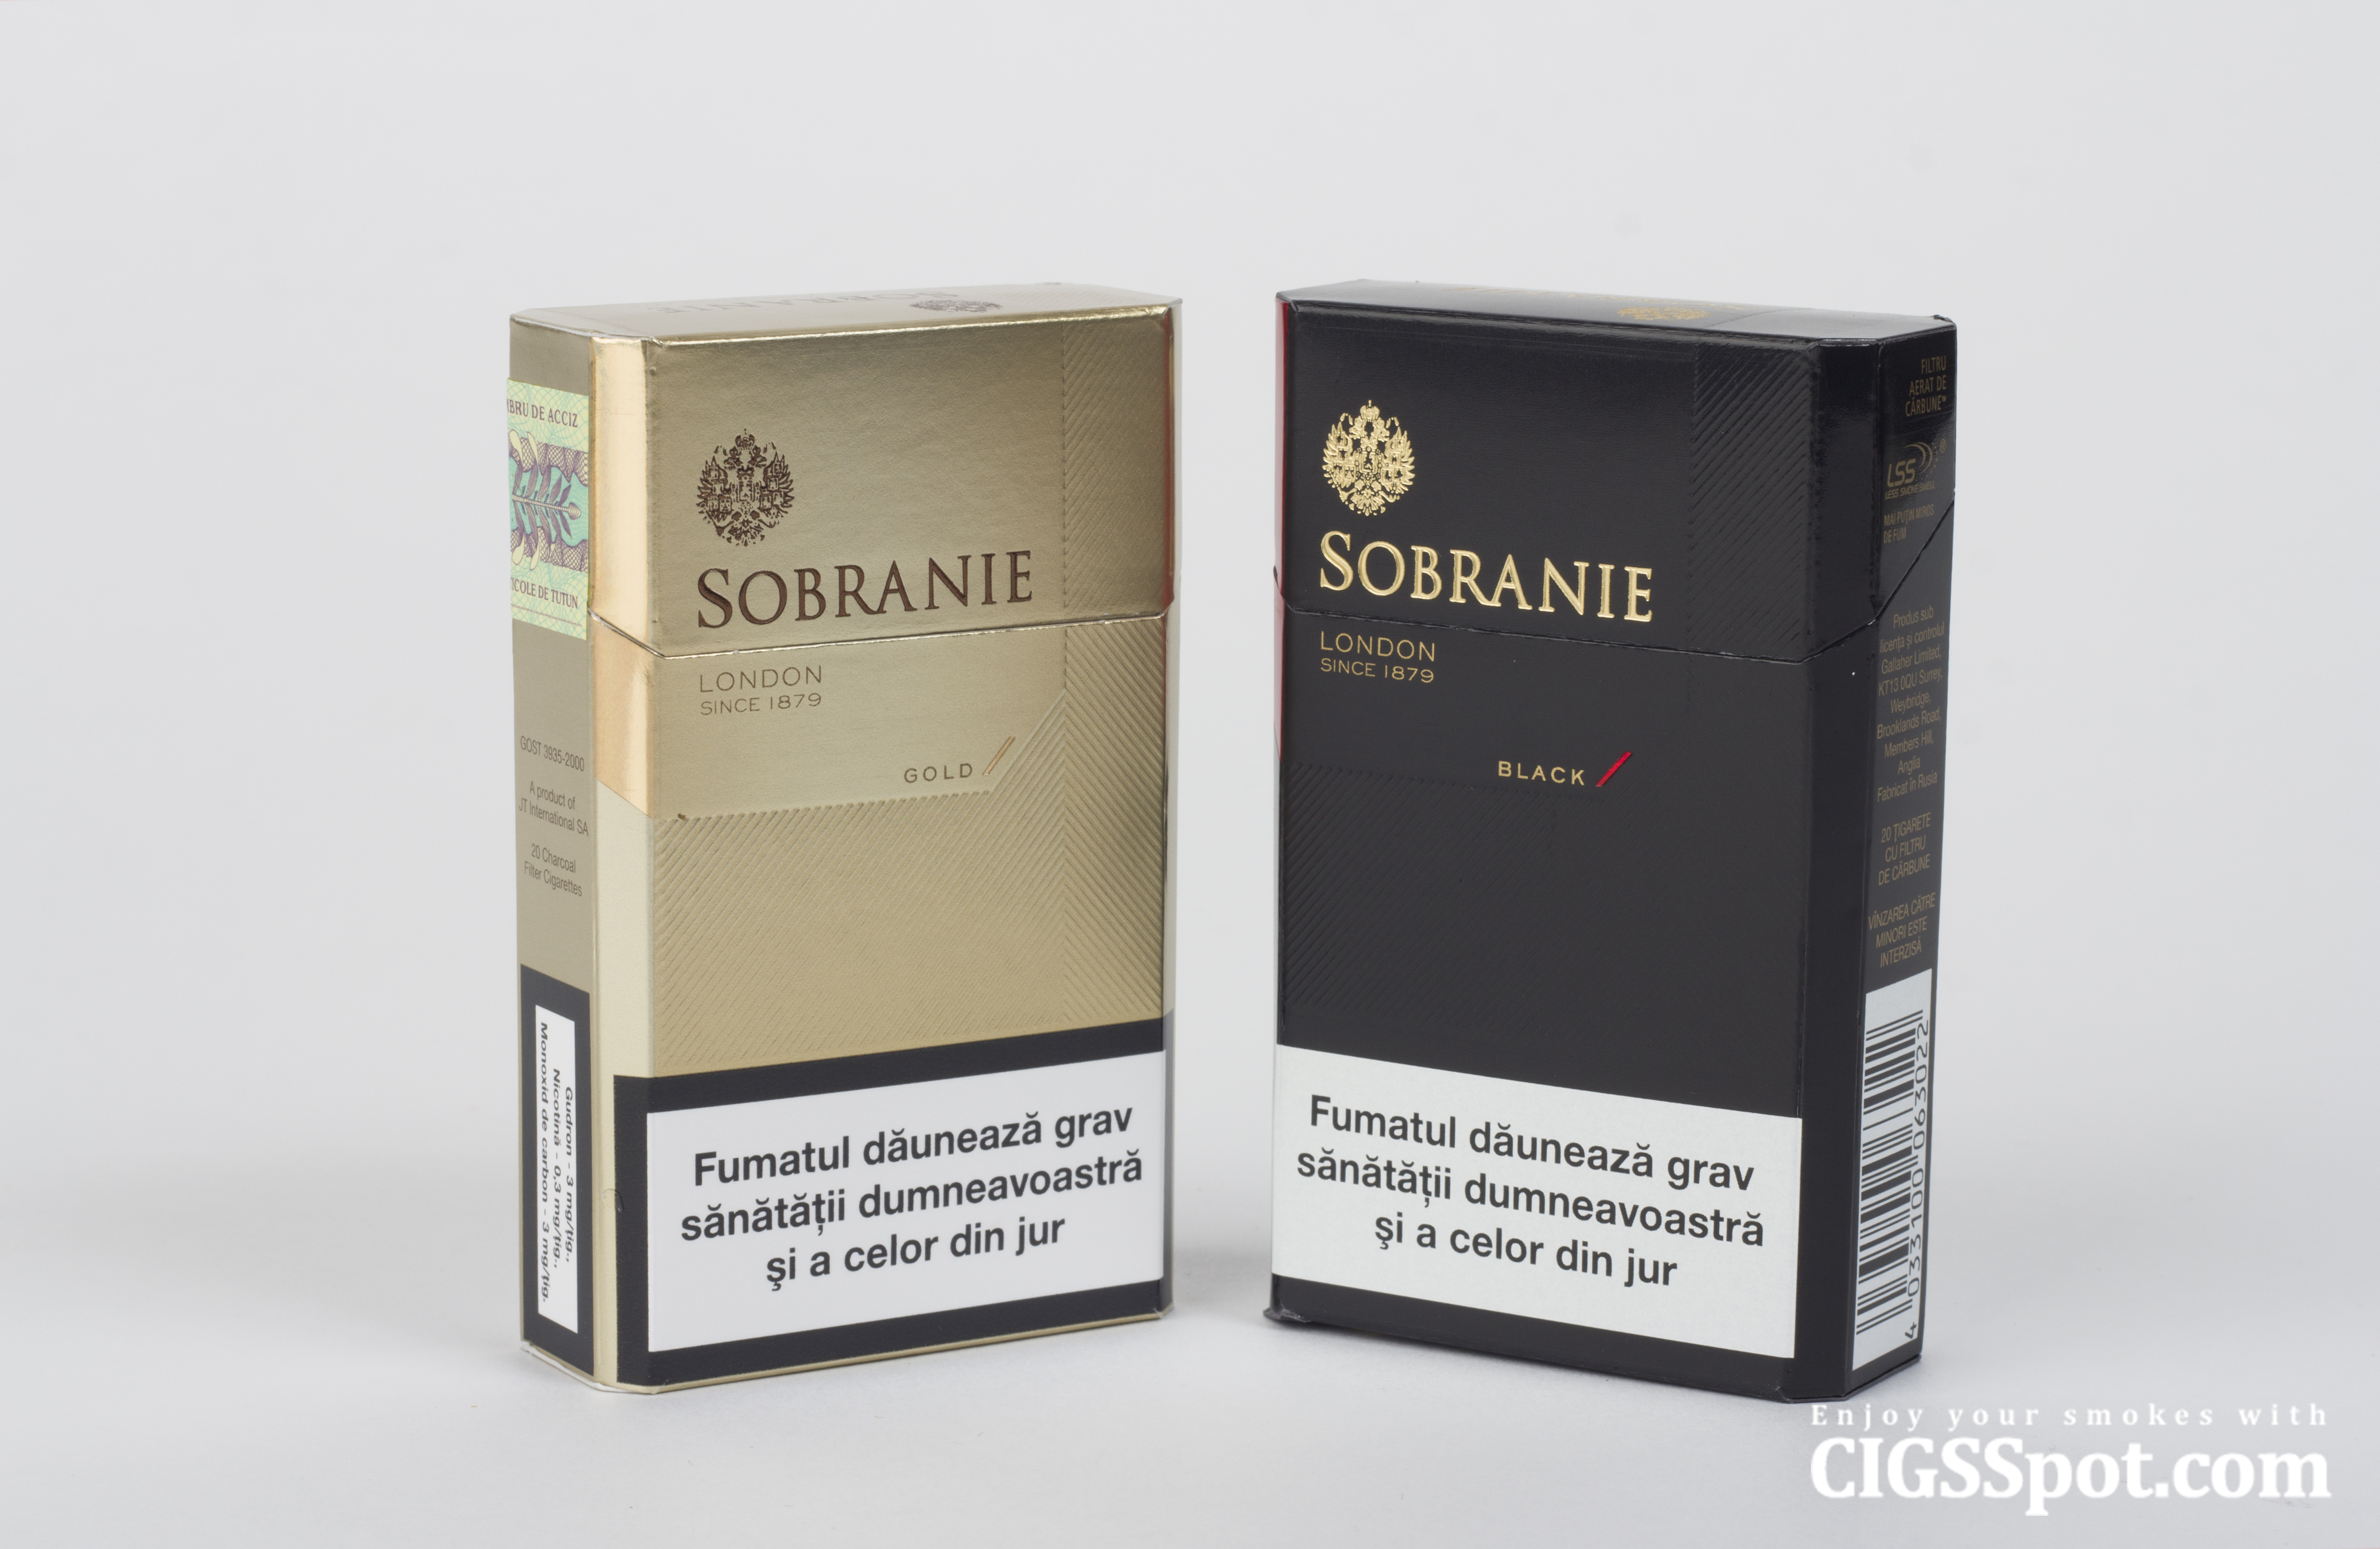 Sobranie cigarettes. History and Review. - Cigsspot